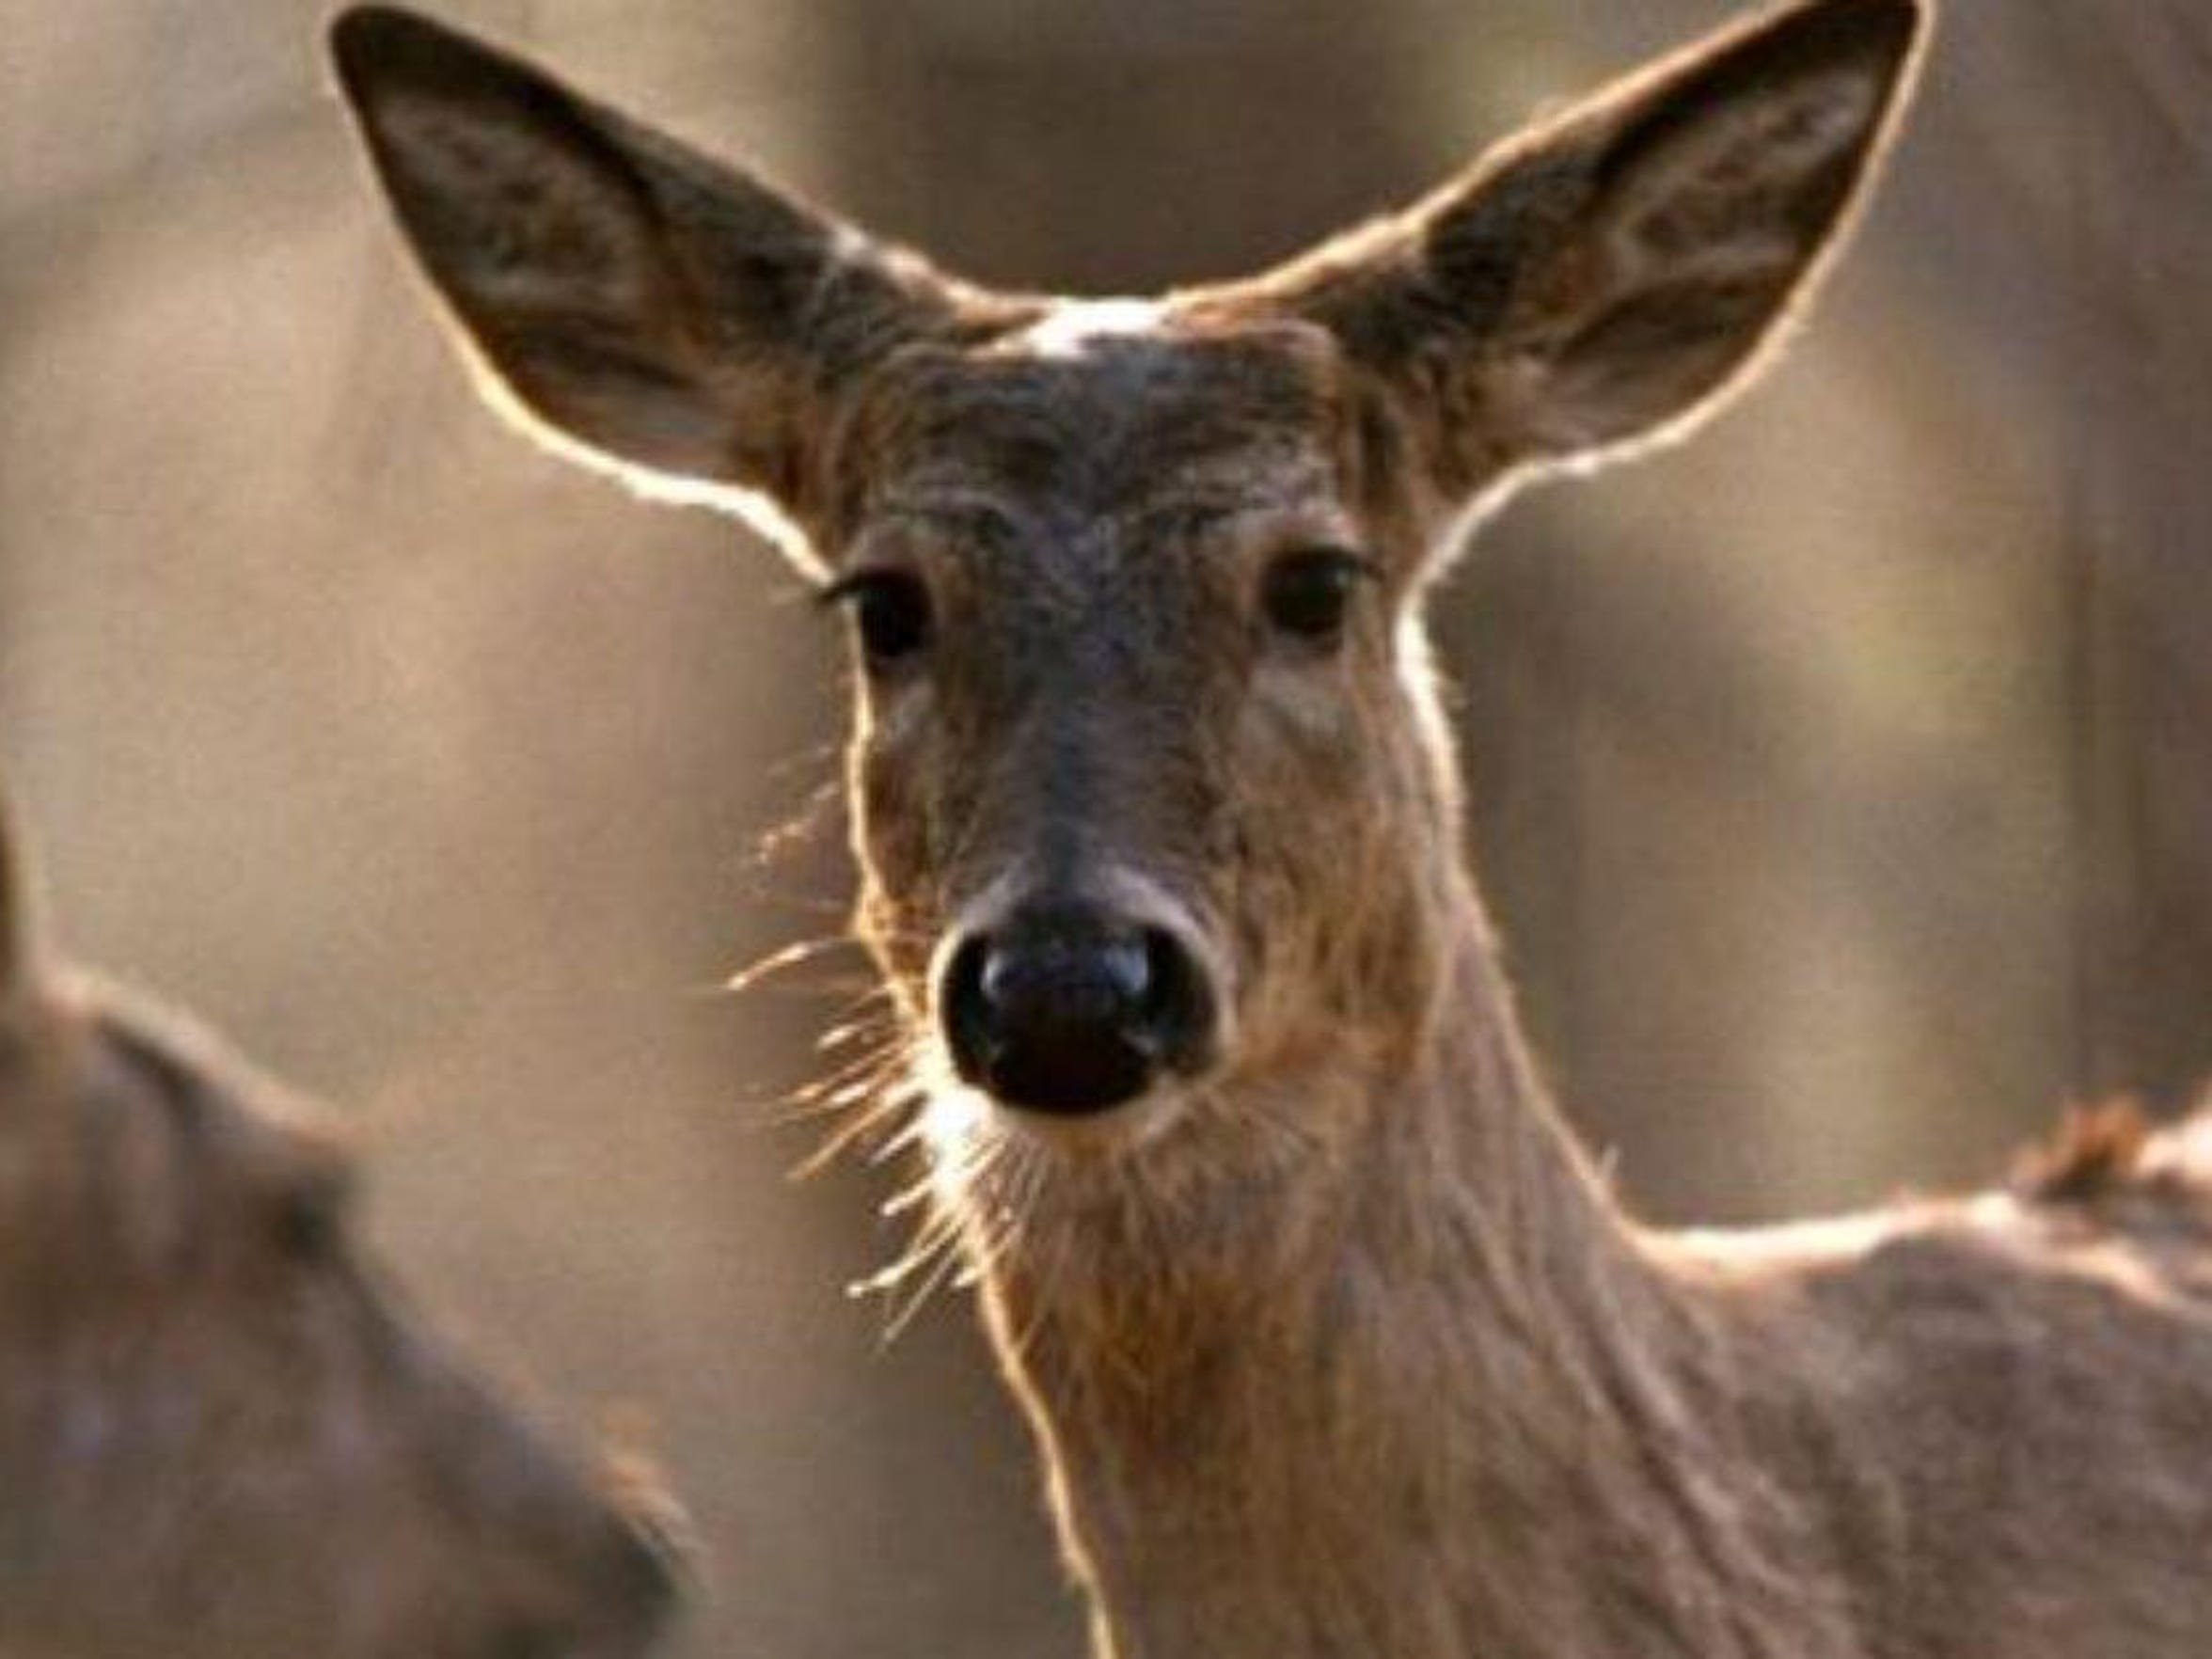 Bow hunters will be heading out to their blinds on Monday for the start of archery season in Michigan.